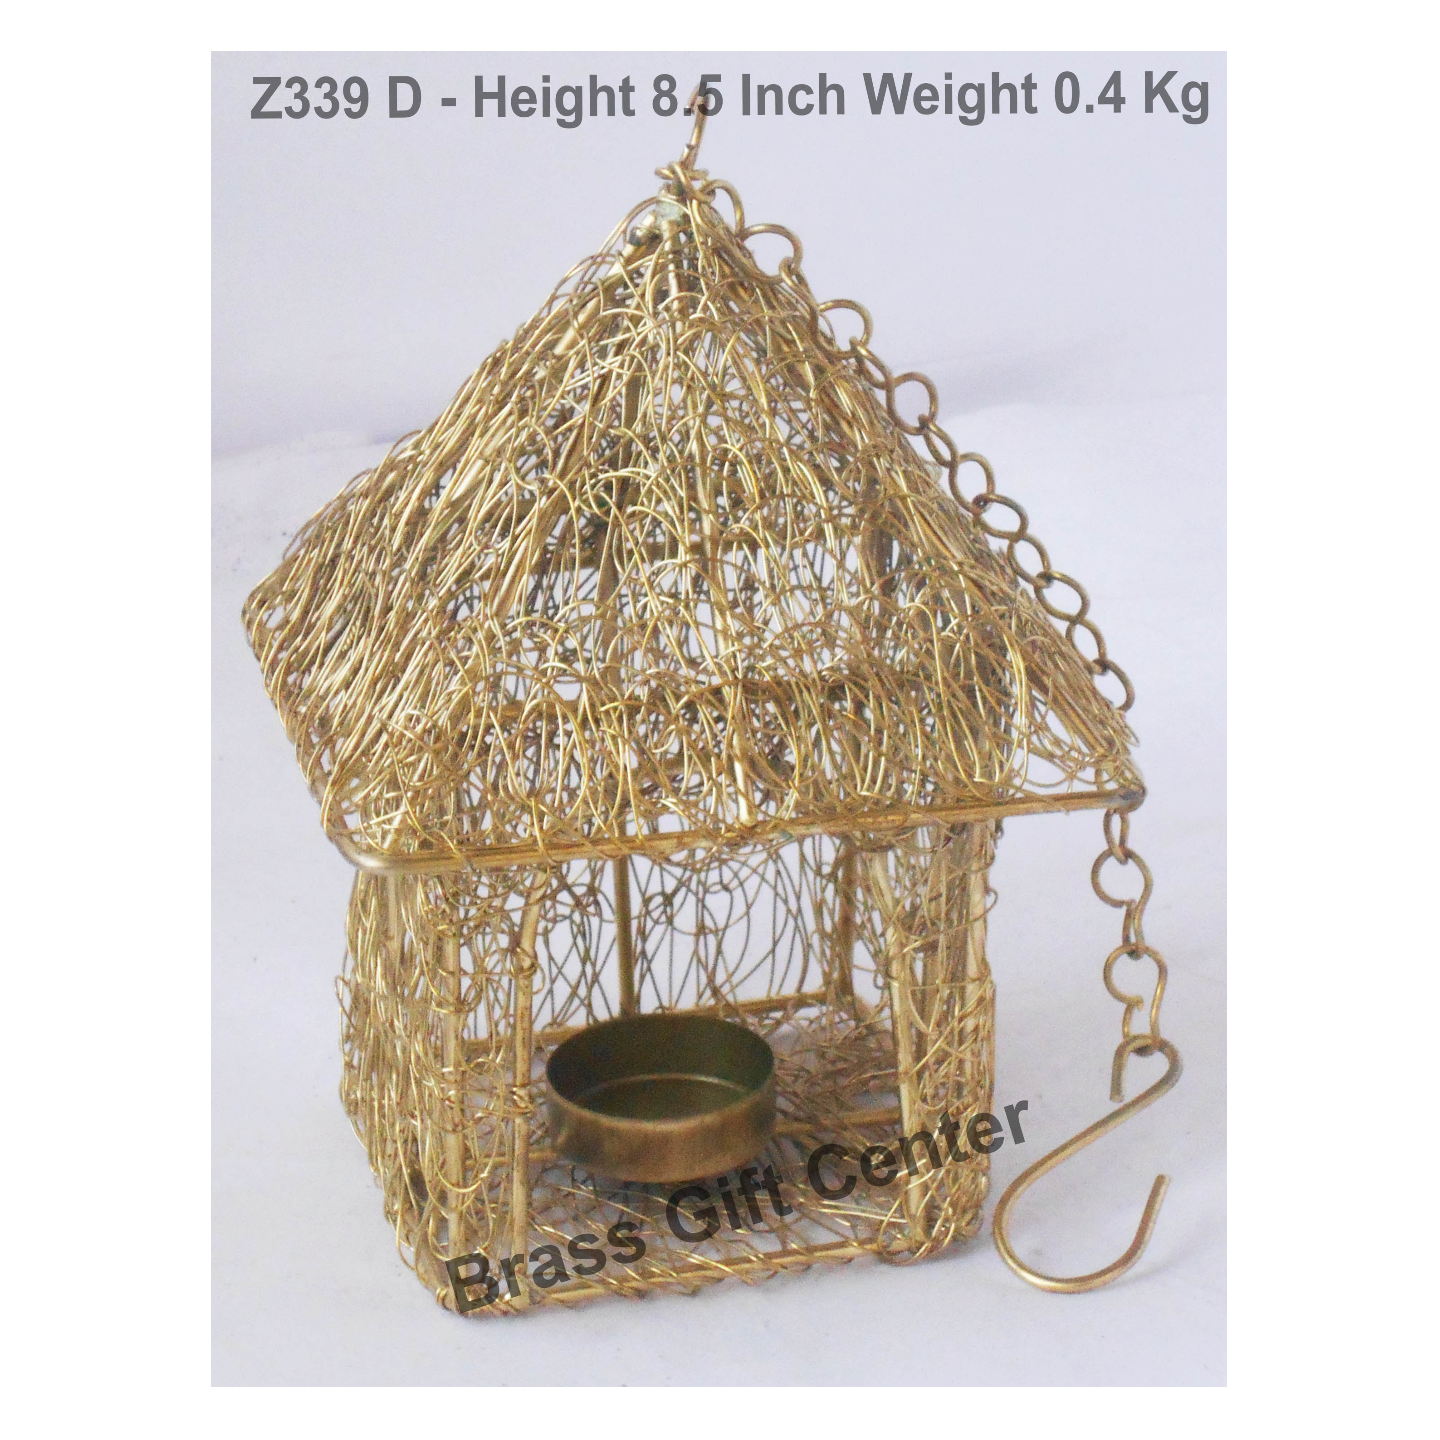 Tea Light Holder - 5.2*5.2*8.5 Inch (Z339 D)